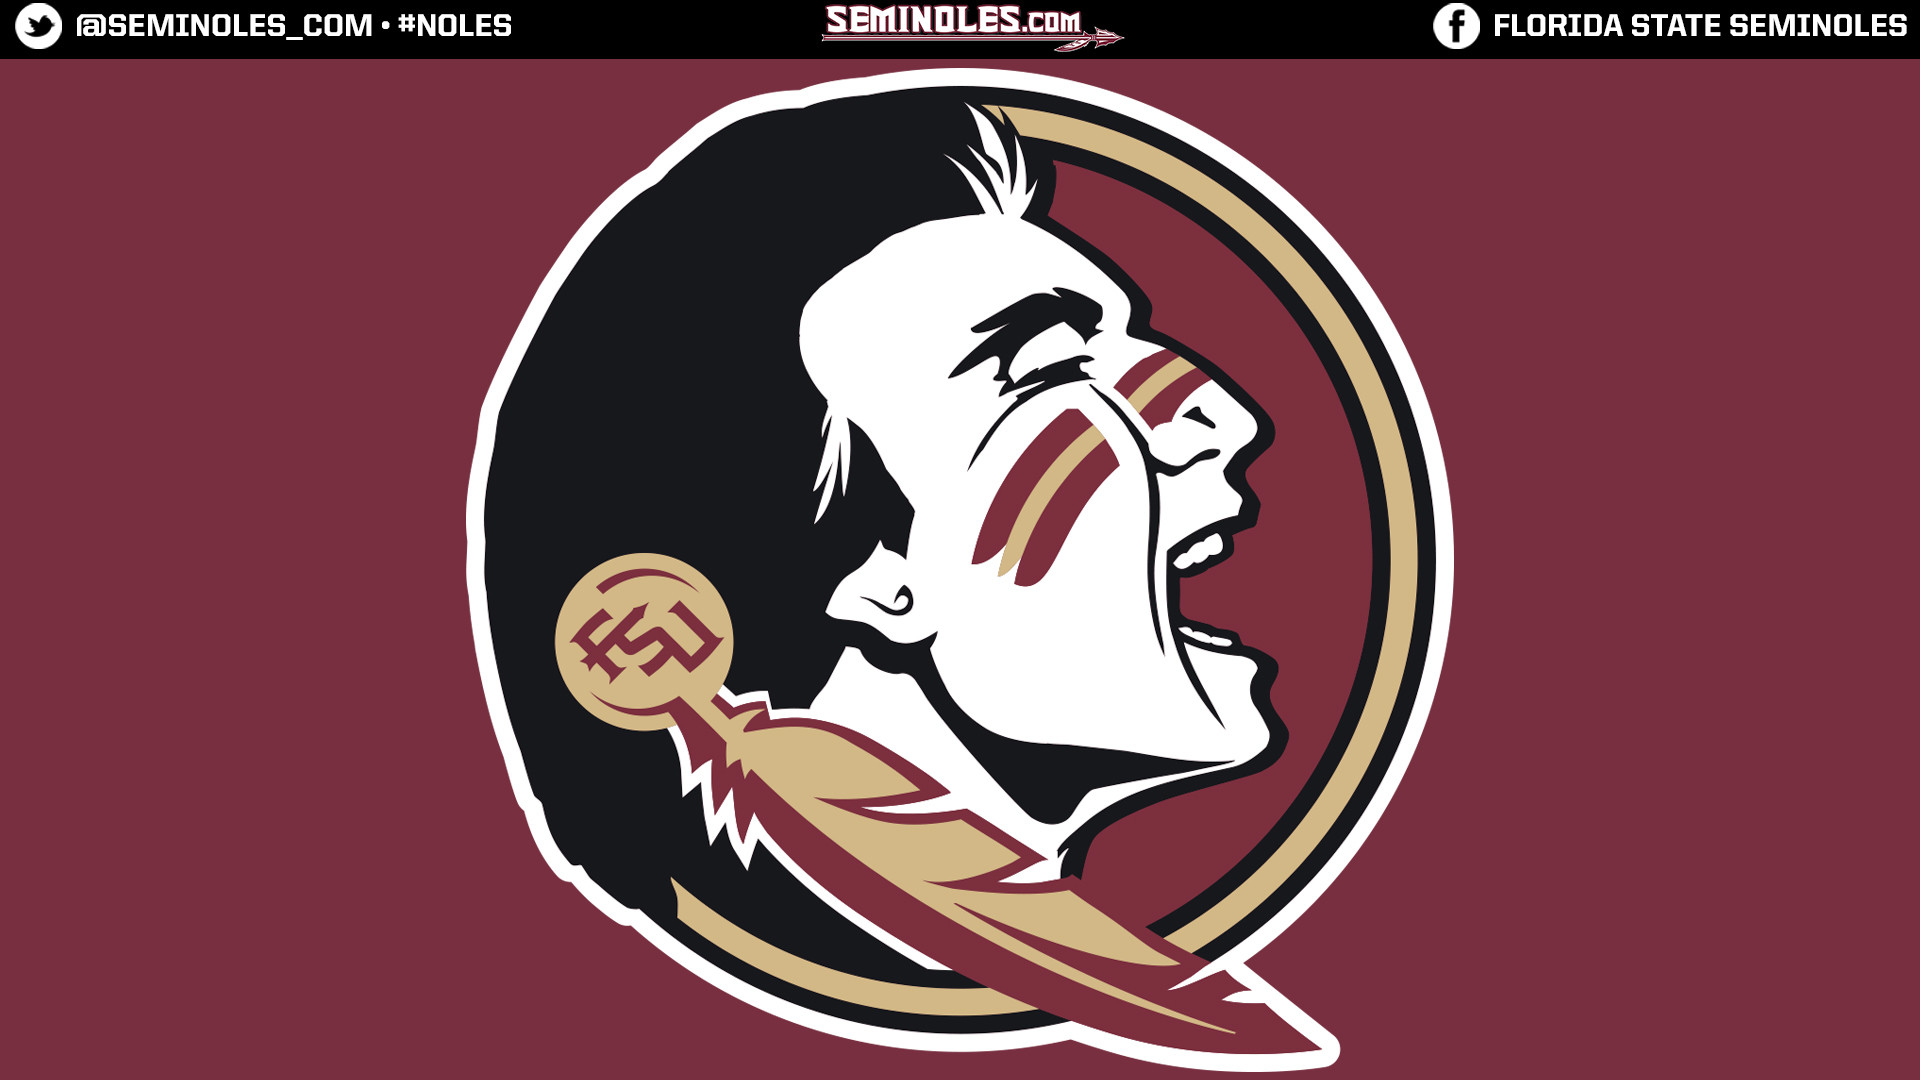 1920x1080 Widescreen Seminole Head Garnet